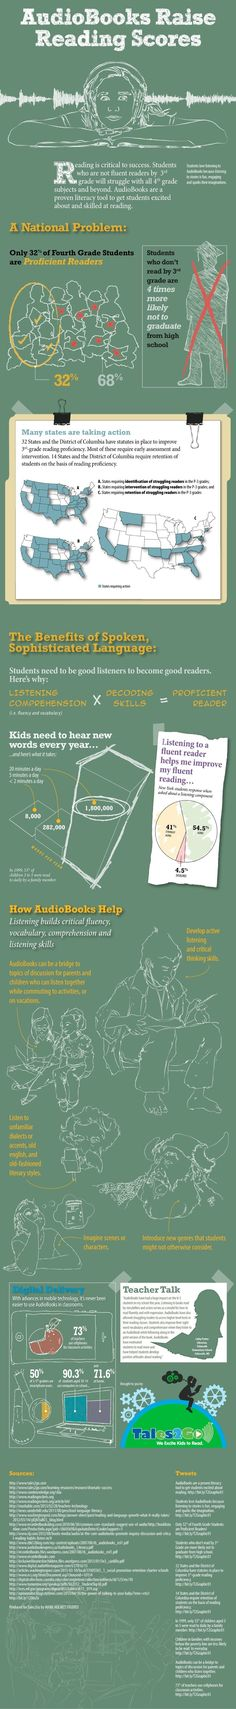 How audiobooks help raise reading scores